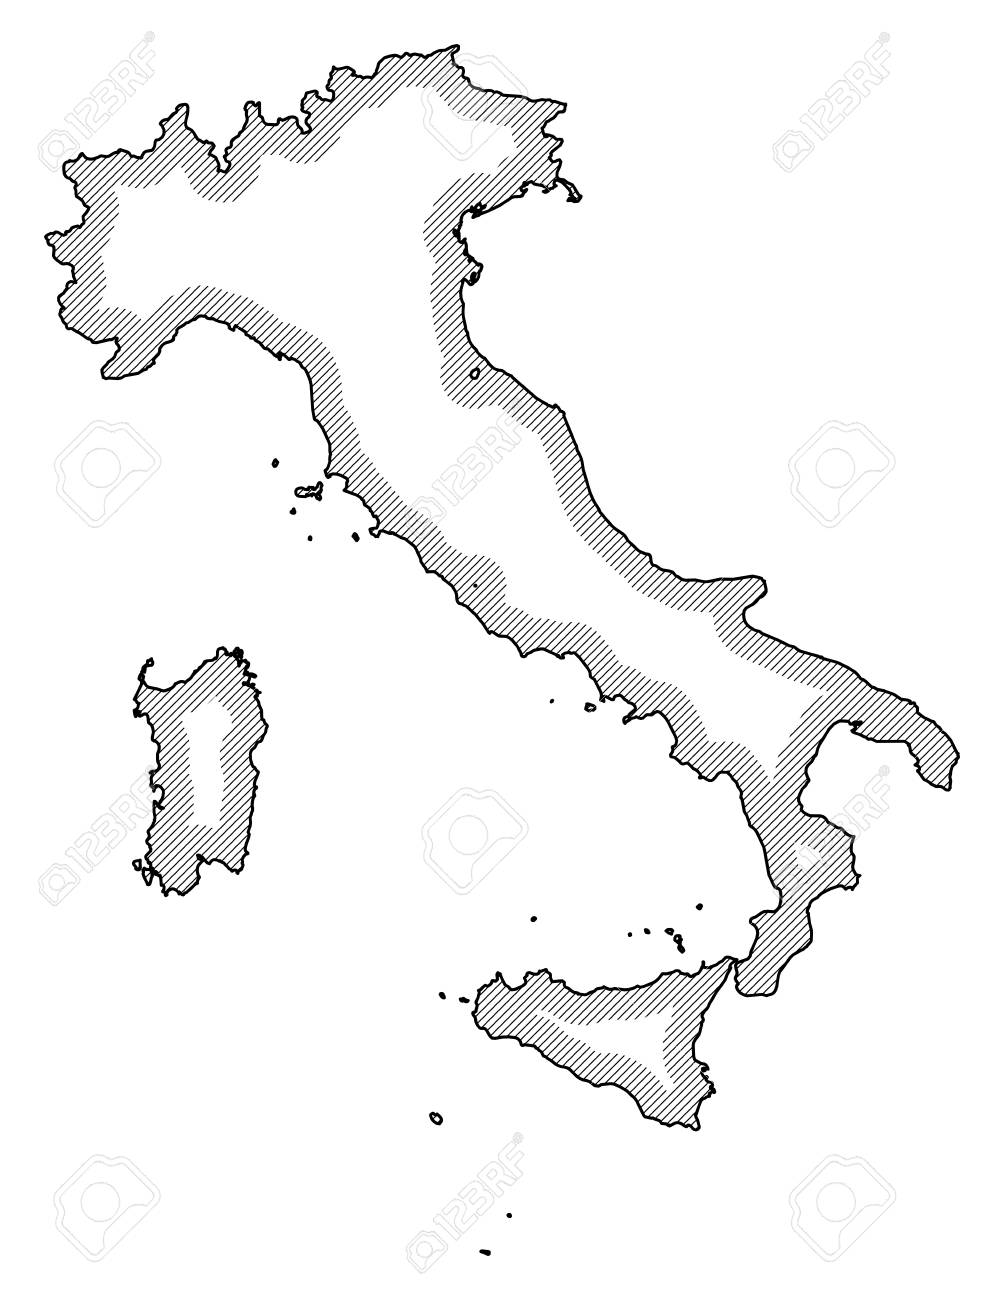 Map Of Italy Black And White.Map Of Italy In Black And White Italy Is Highlighted By A Hatching